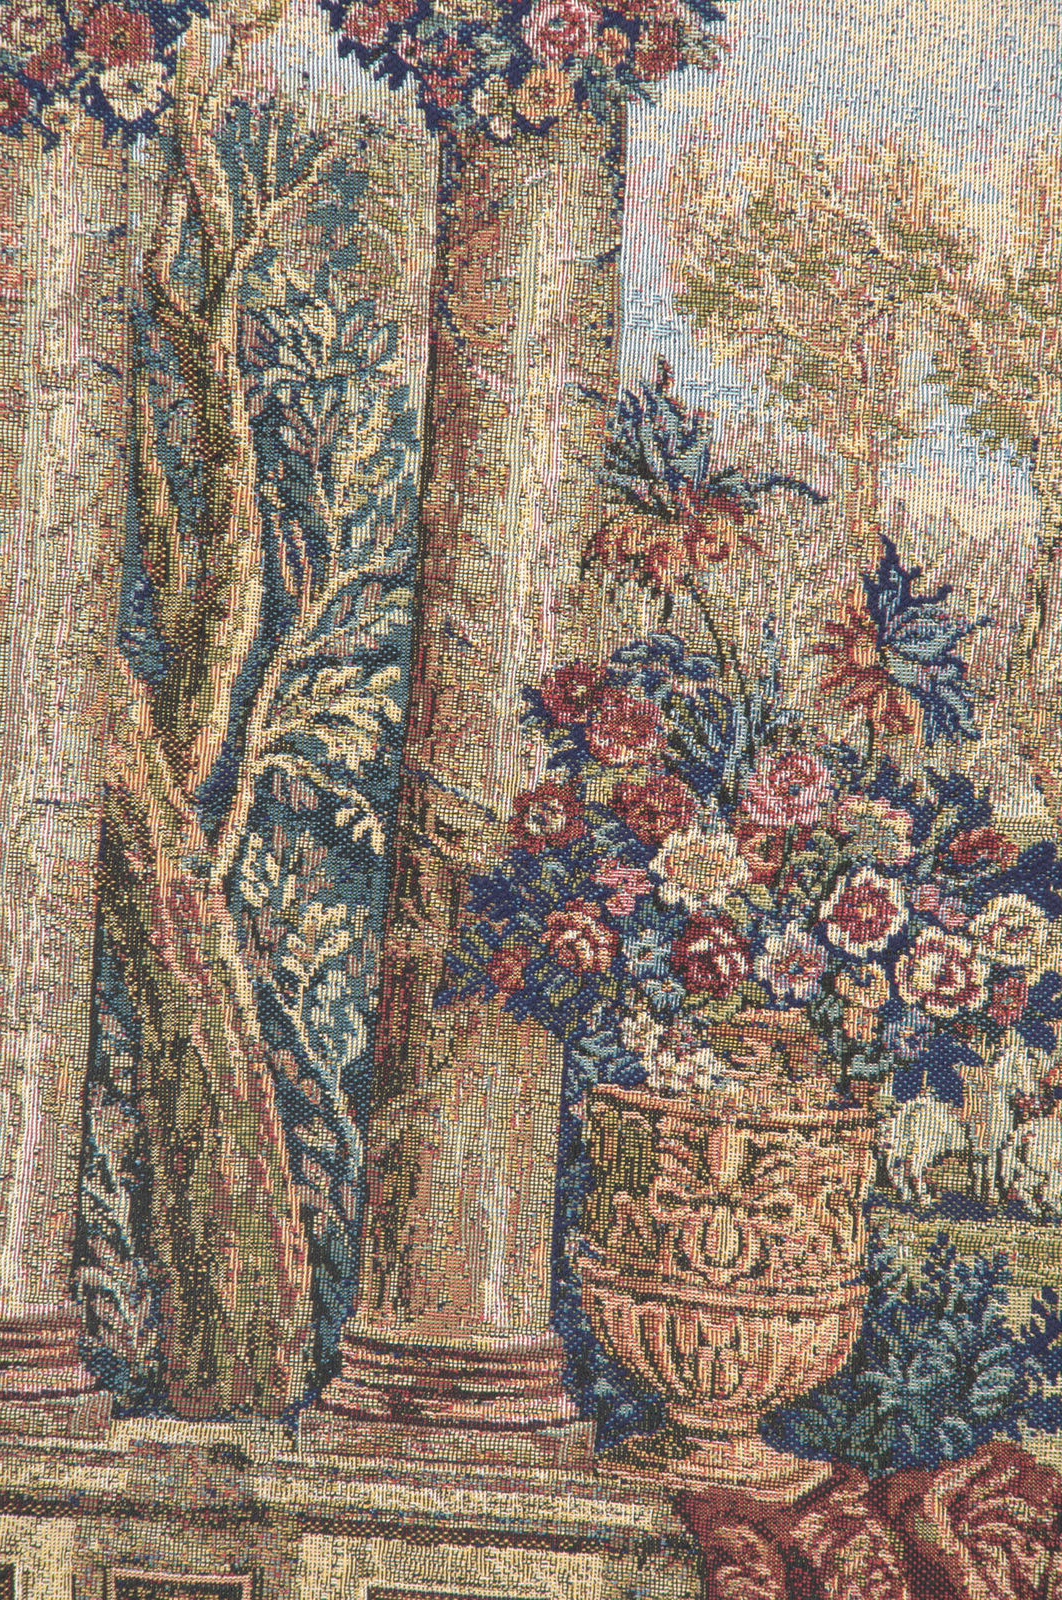 Blended Fabric Peacock European Tapestries Intended For Preferred Peacock Ii Italian Jacquard Woven Tapestry Textile Art Wall Hanging Home Decor (View 4 of 20)